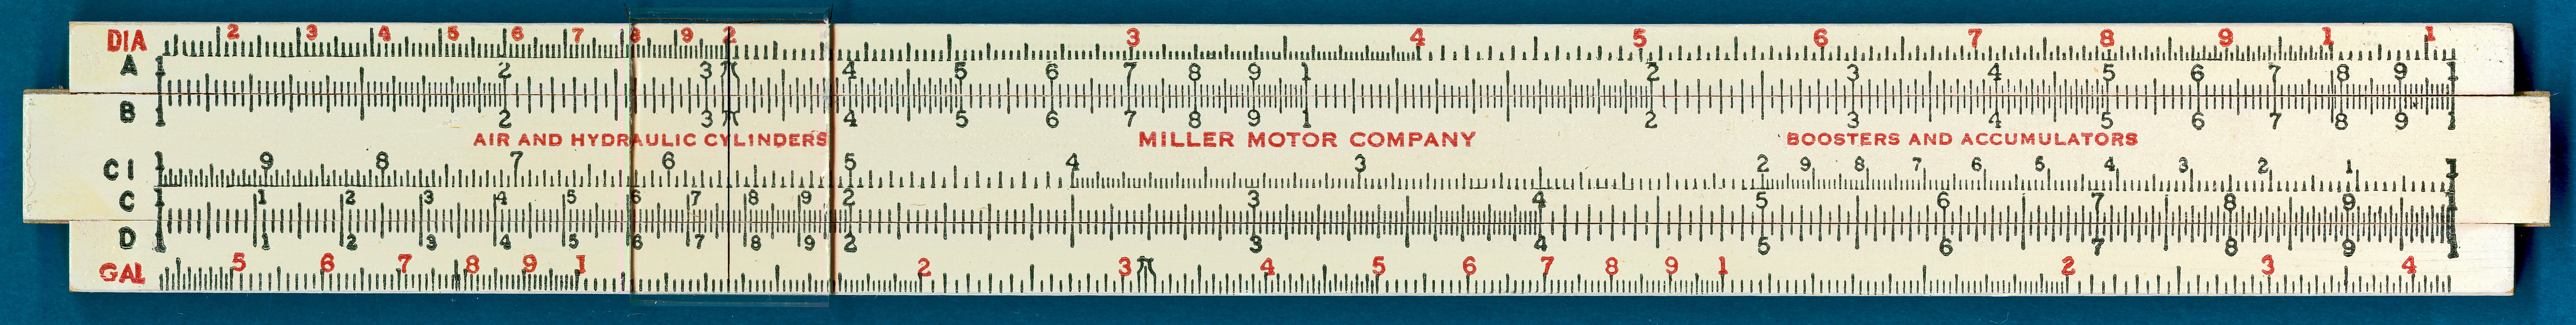 Lawrence Engineering Services Miller Motor